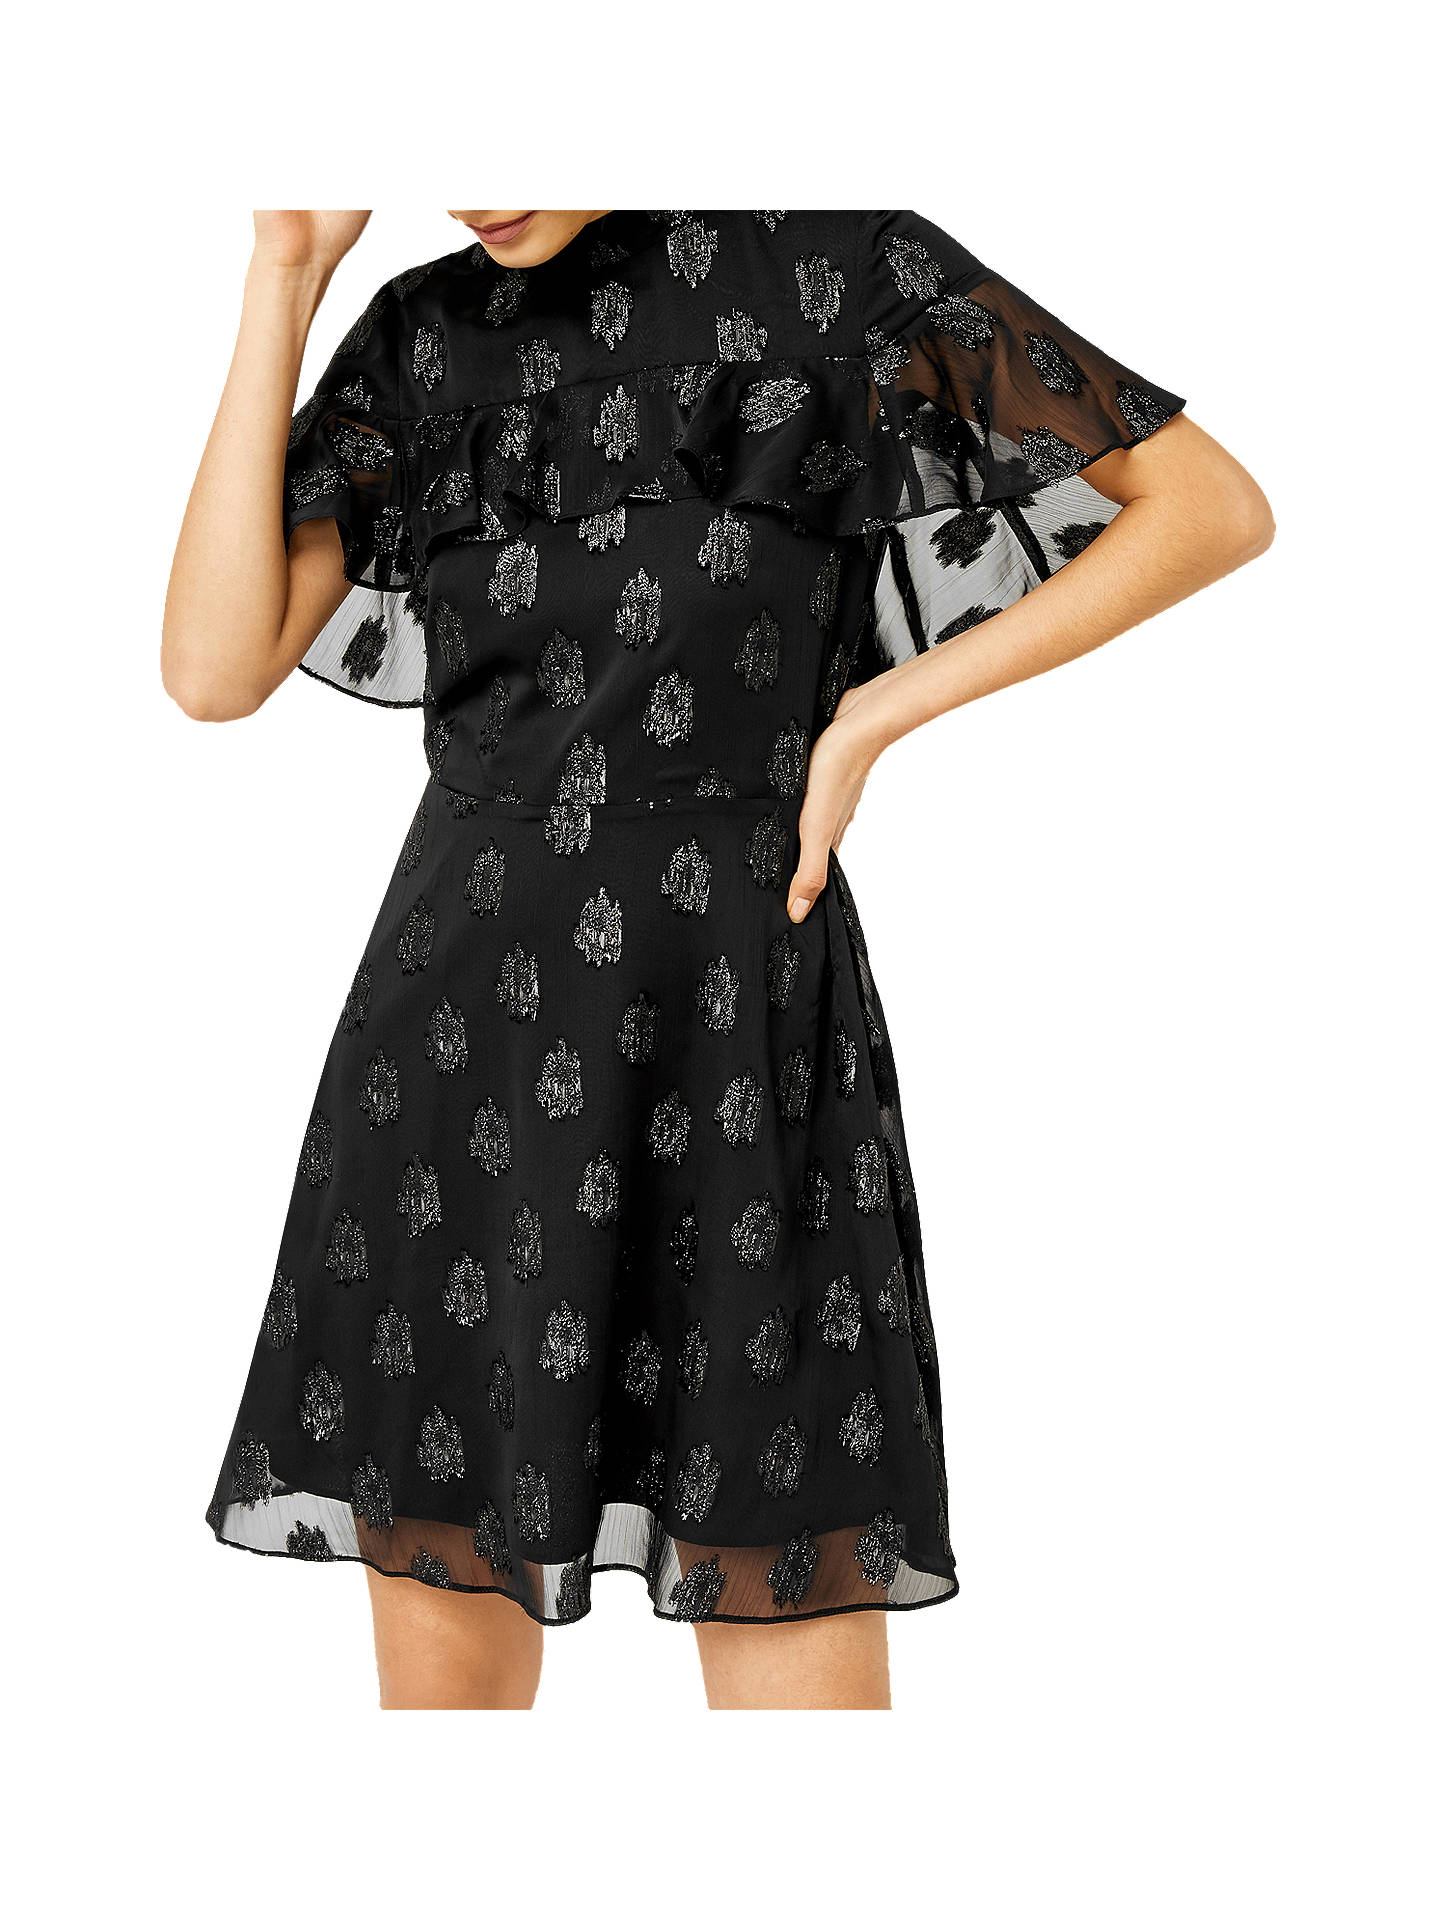 BuyWarehouse Clipped Jacquard Dress, Black, 6 Online at johnlewis.com